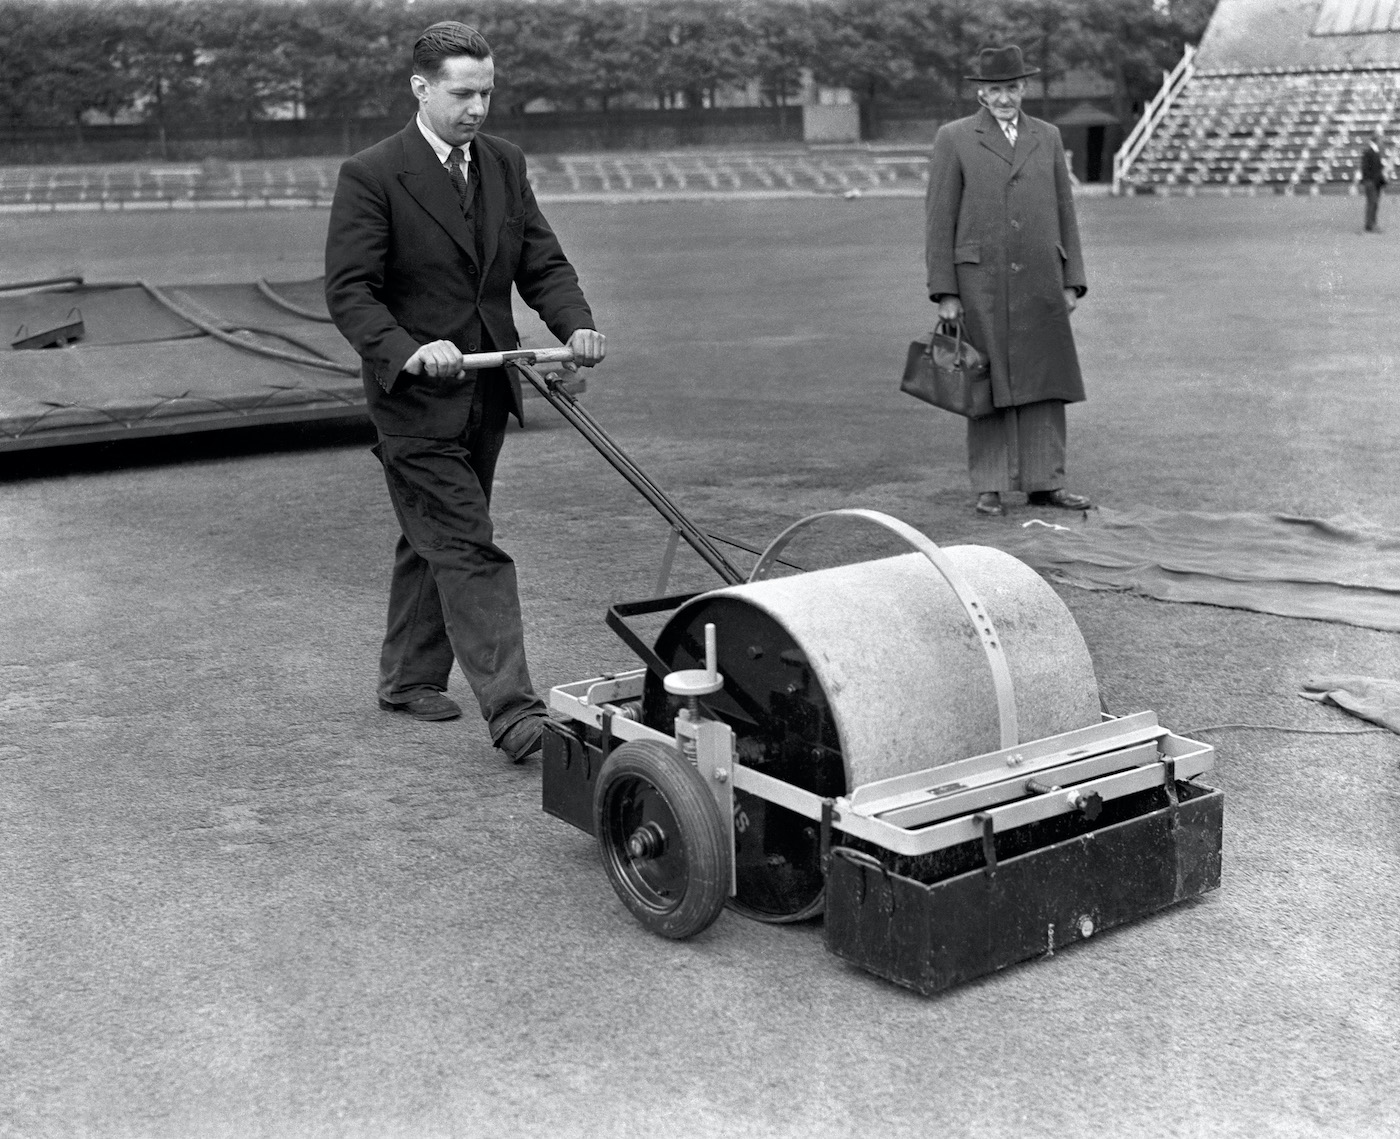 A groundsman demonstrates a revolutionary new device to dry the cricket pitch, 1953